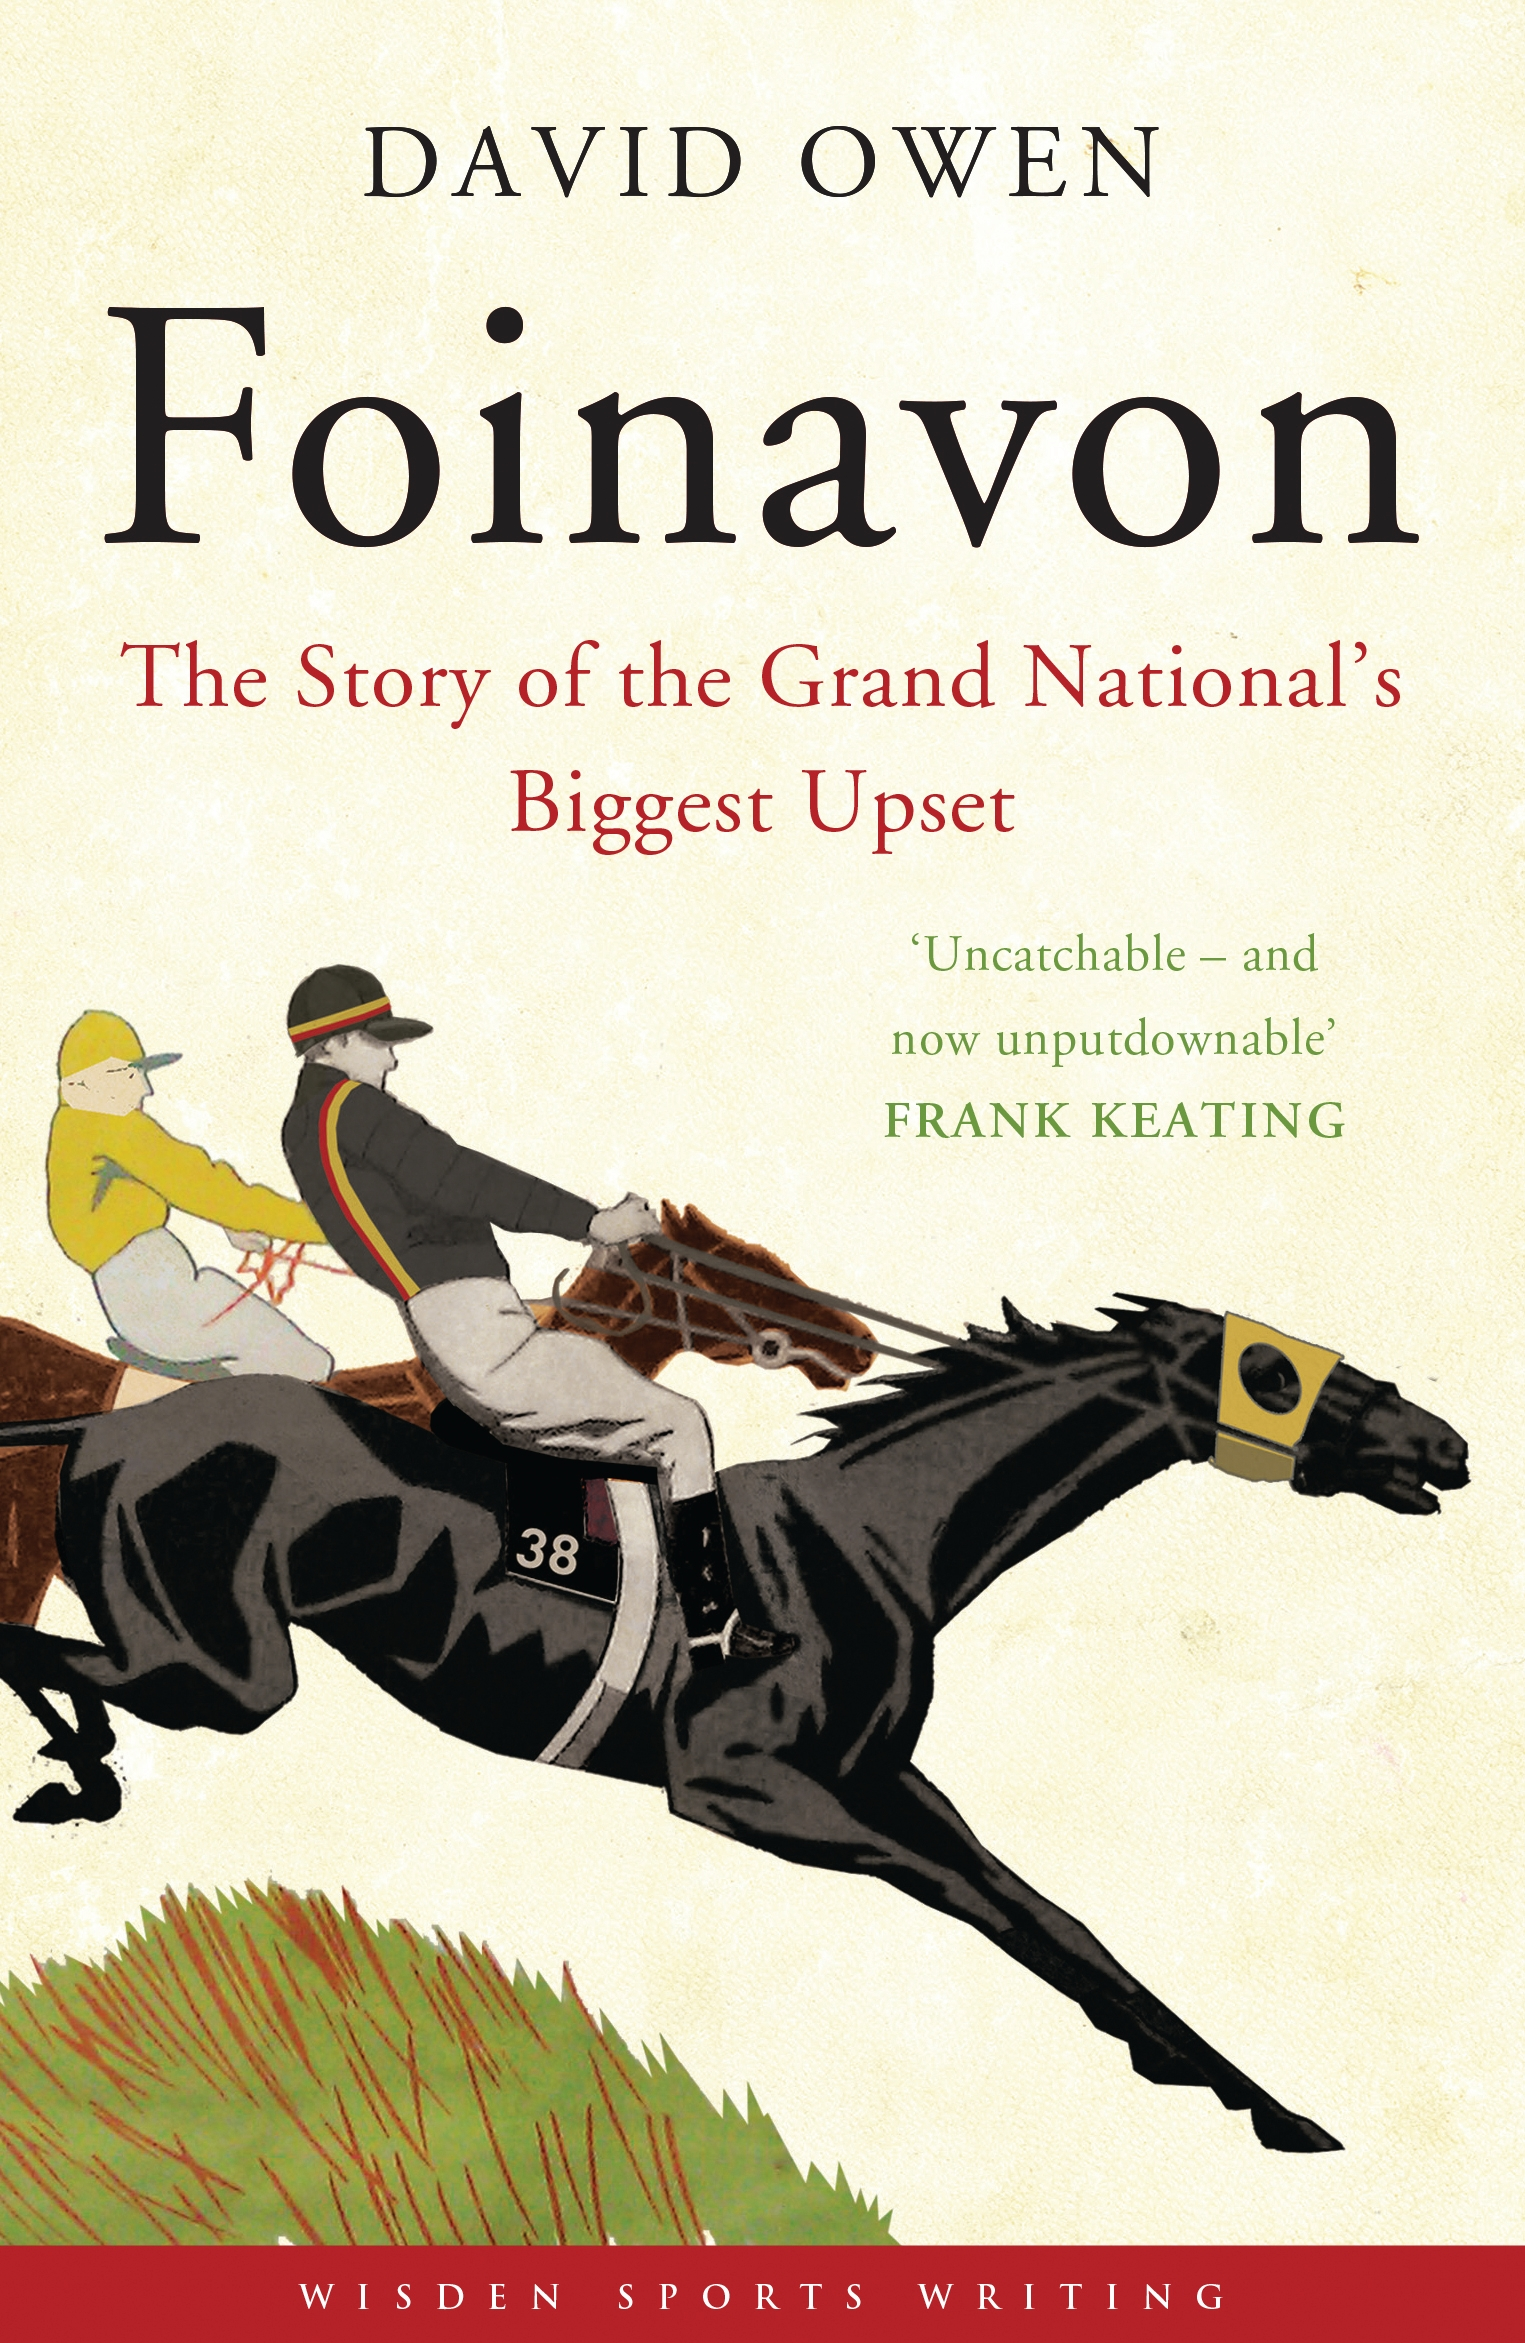 Foinavon The Story of the Grand National's Biggest Upset